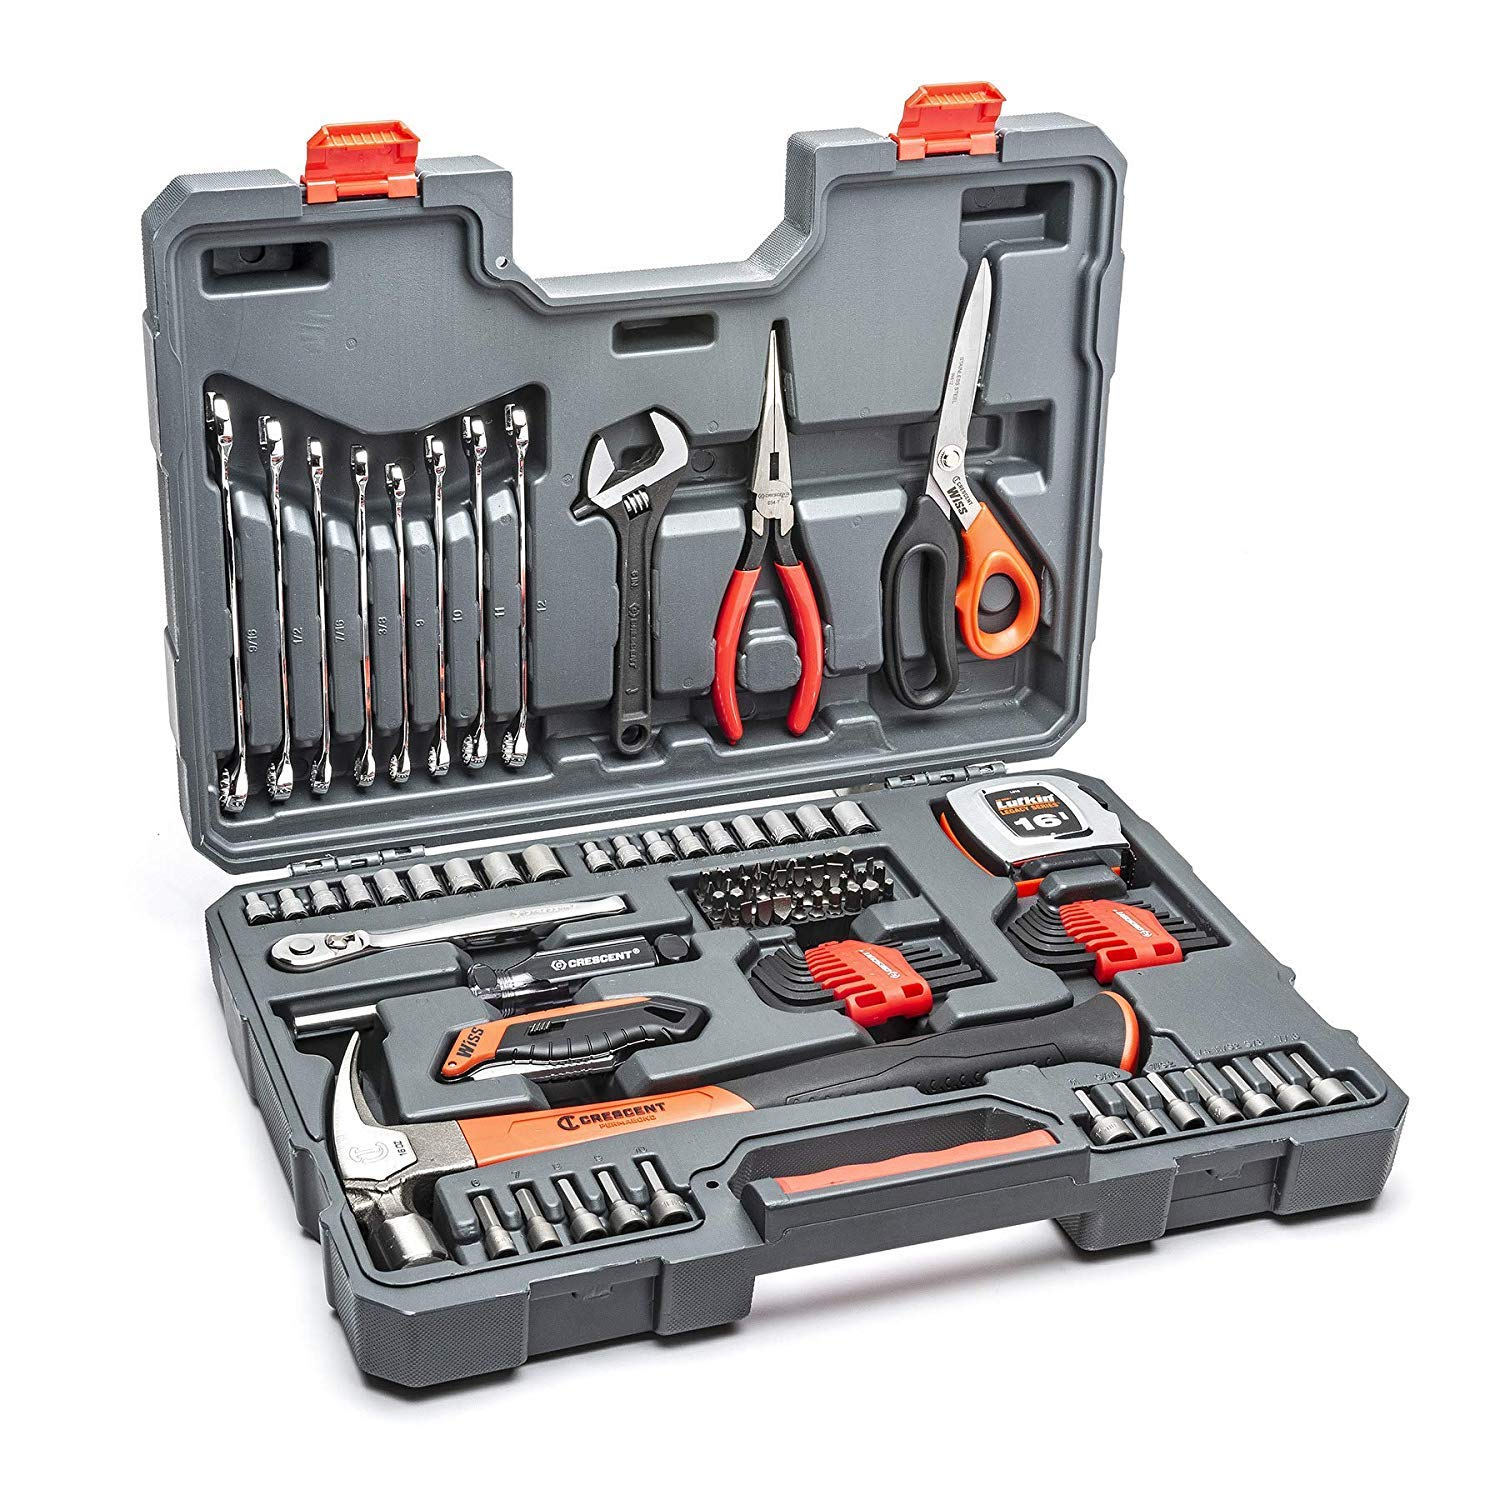 Crescent CTK101 101-Piece General Purpose Tool Set, SAE & Metric